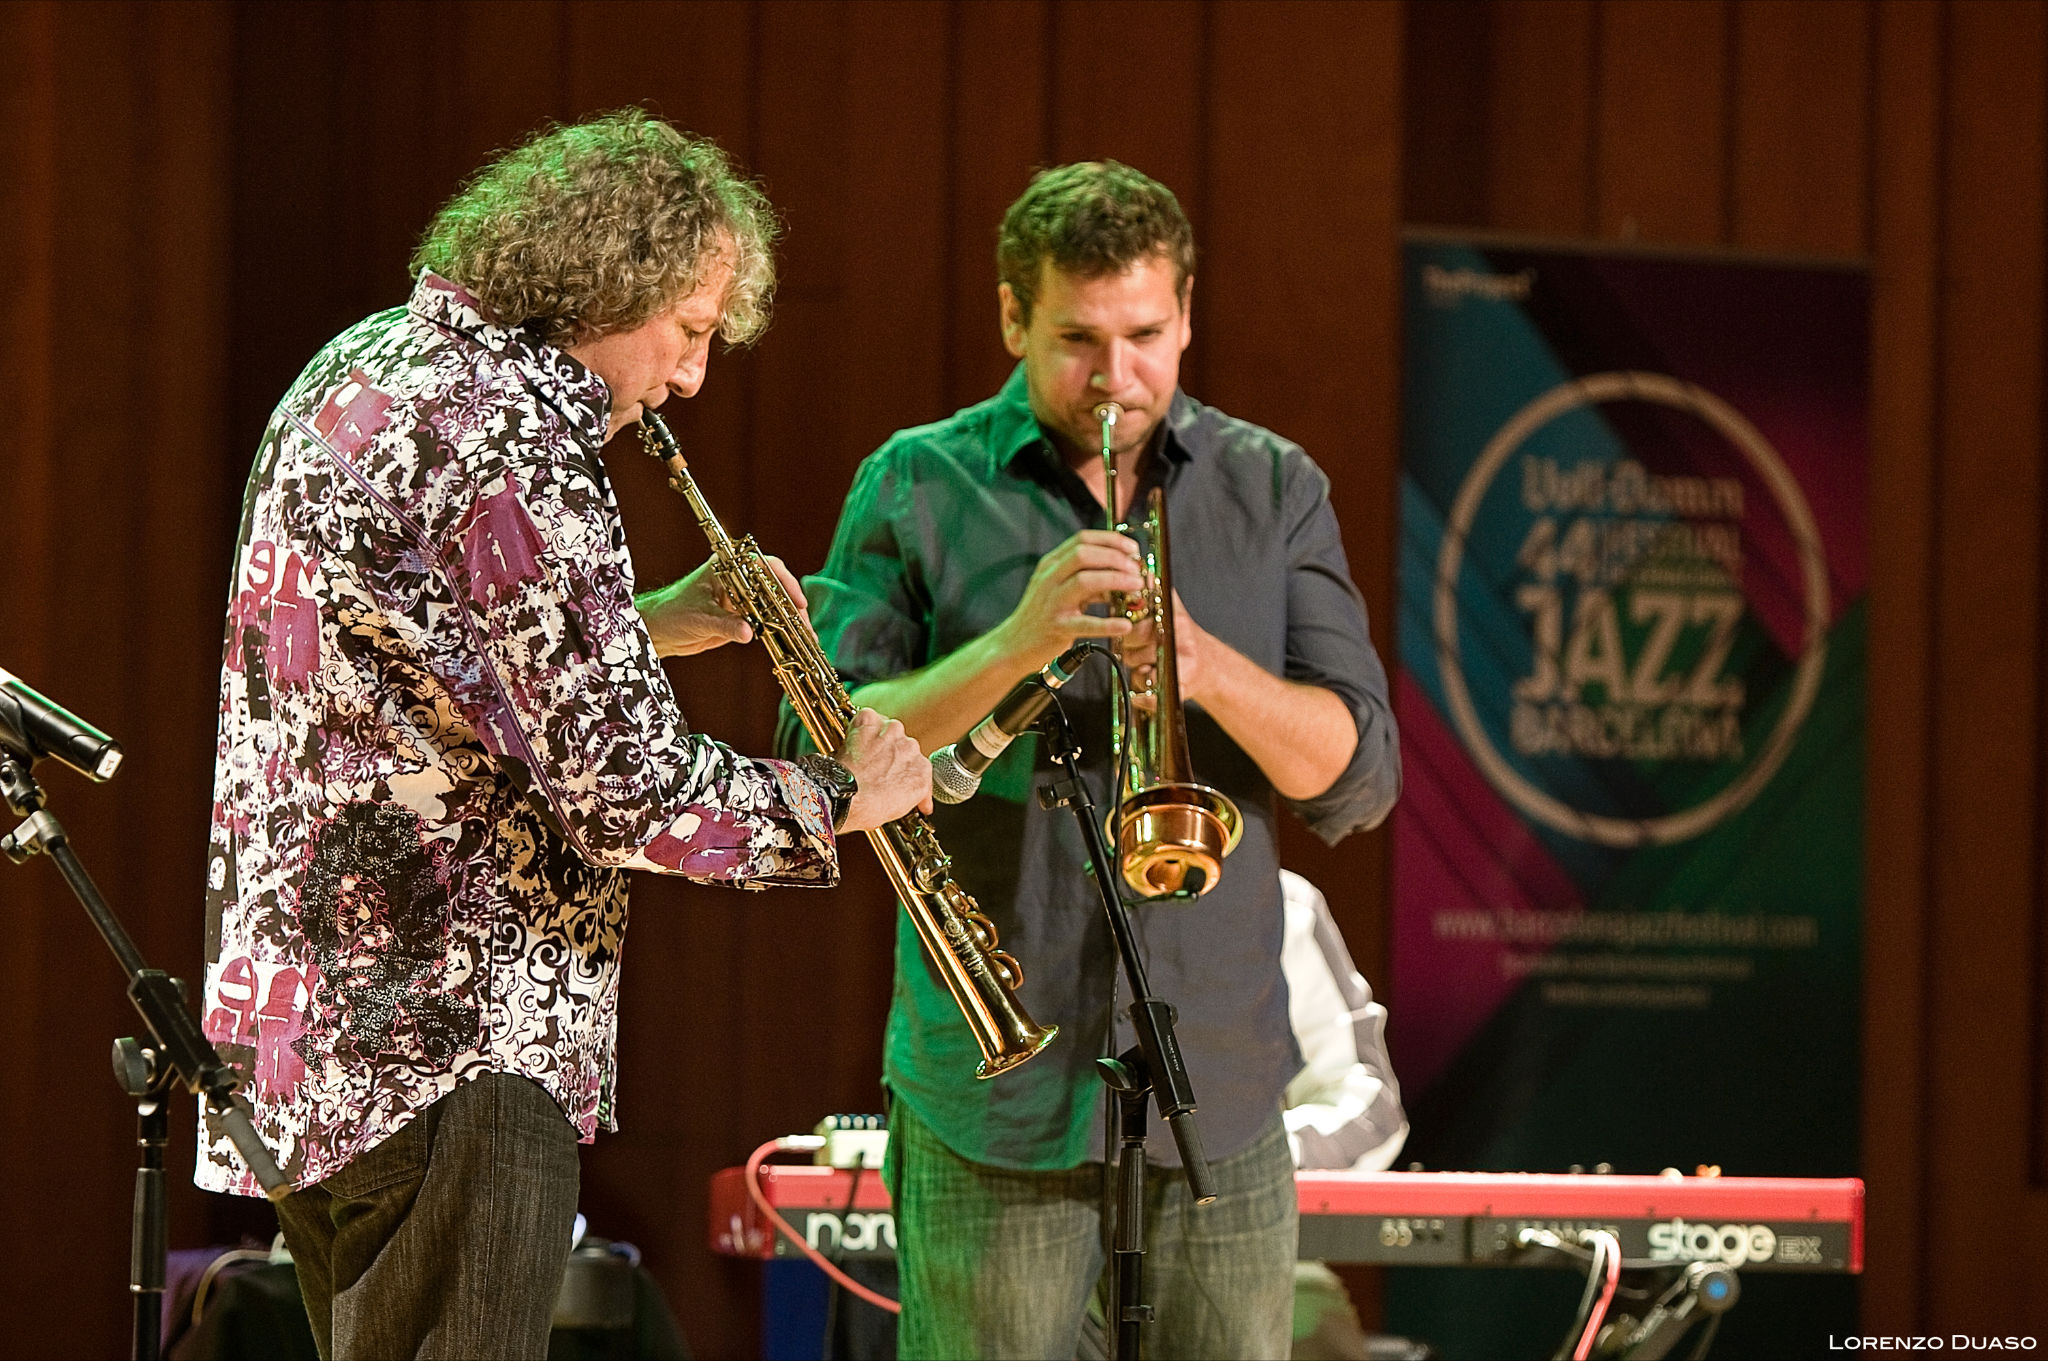 Bob Belden & Animation at the Barcelona Jazz Festival